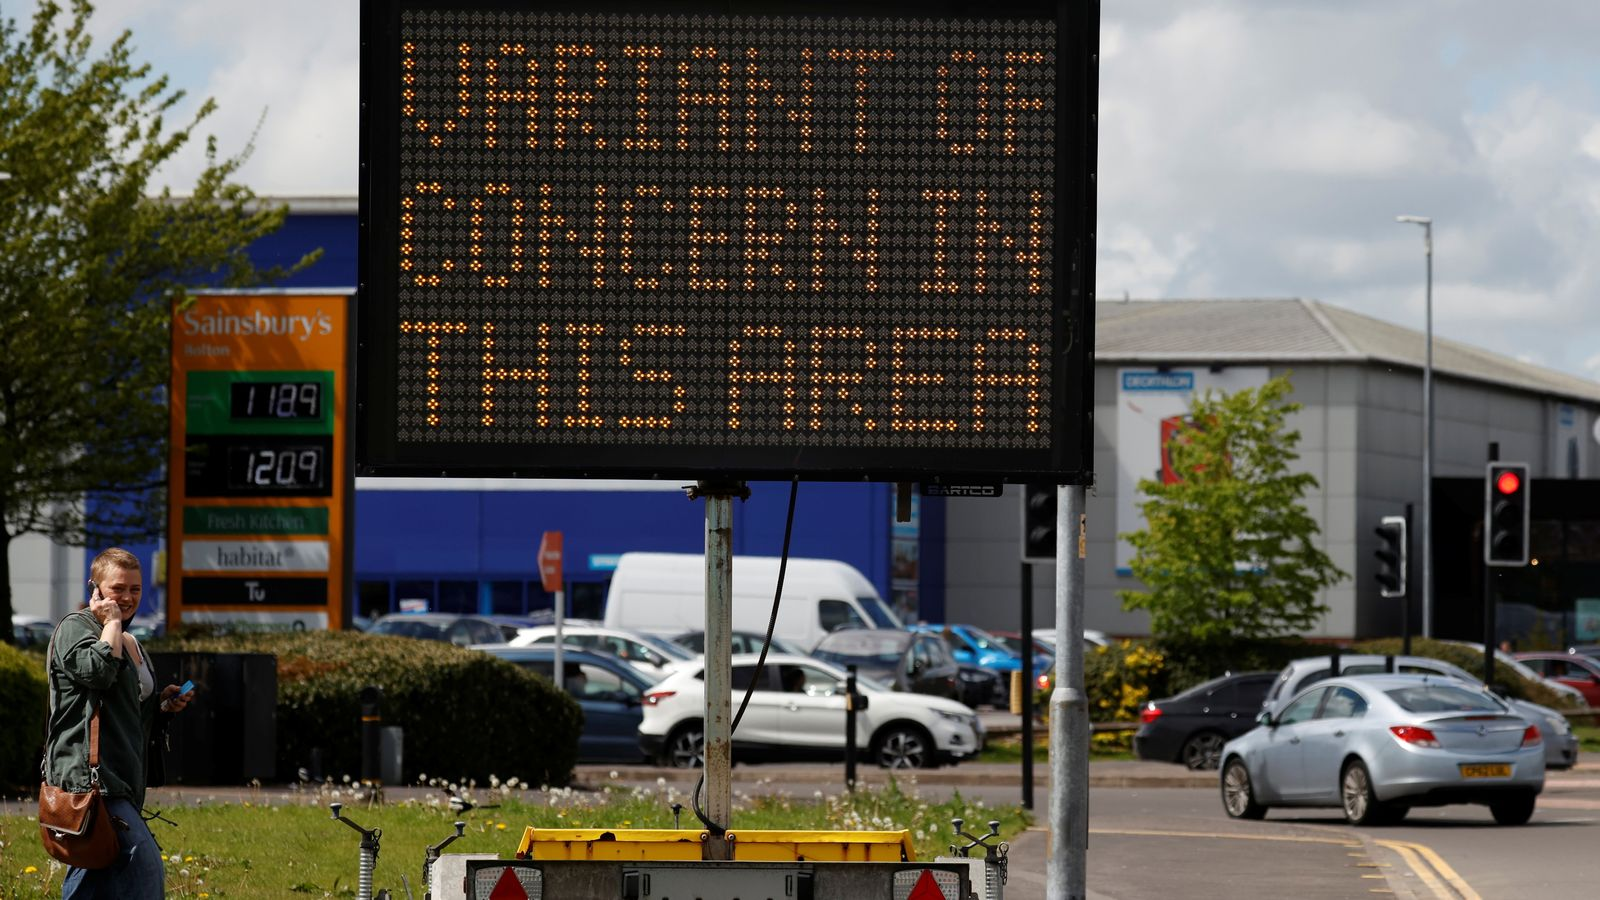 COVID-19: 'Hazard of unrest' in Bolton if native coronavirus lockdown measures imposed, council chief warns